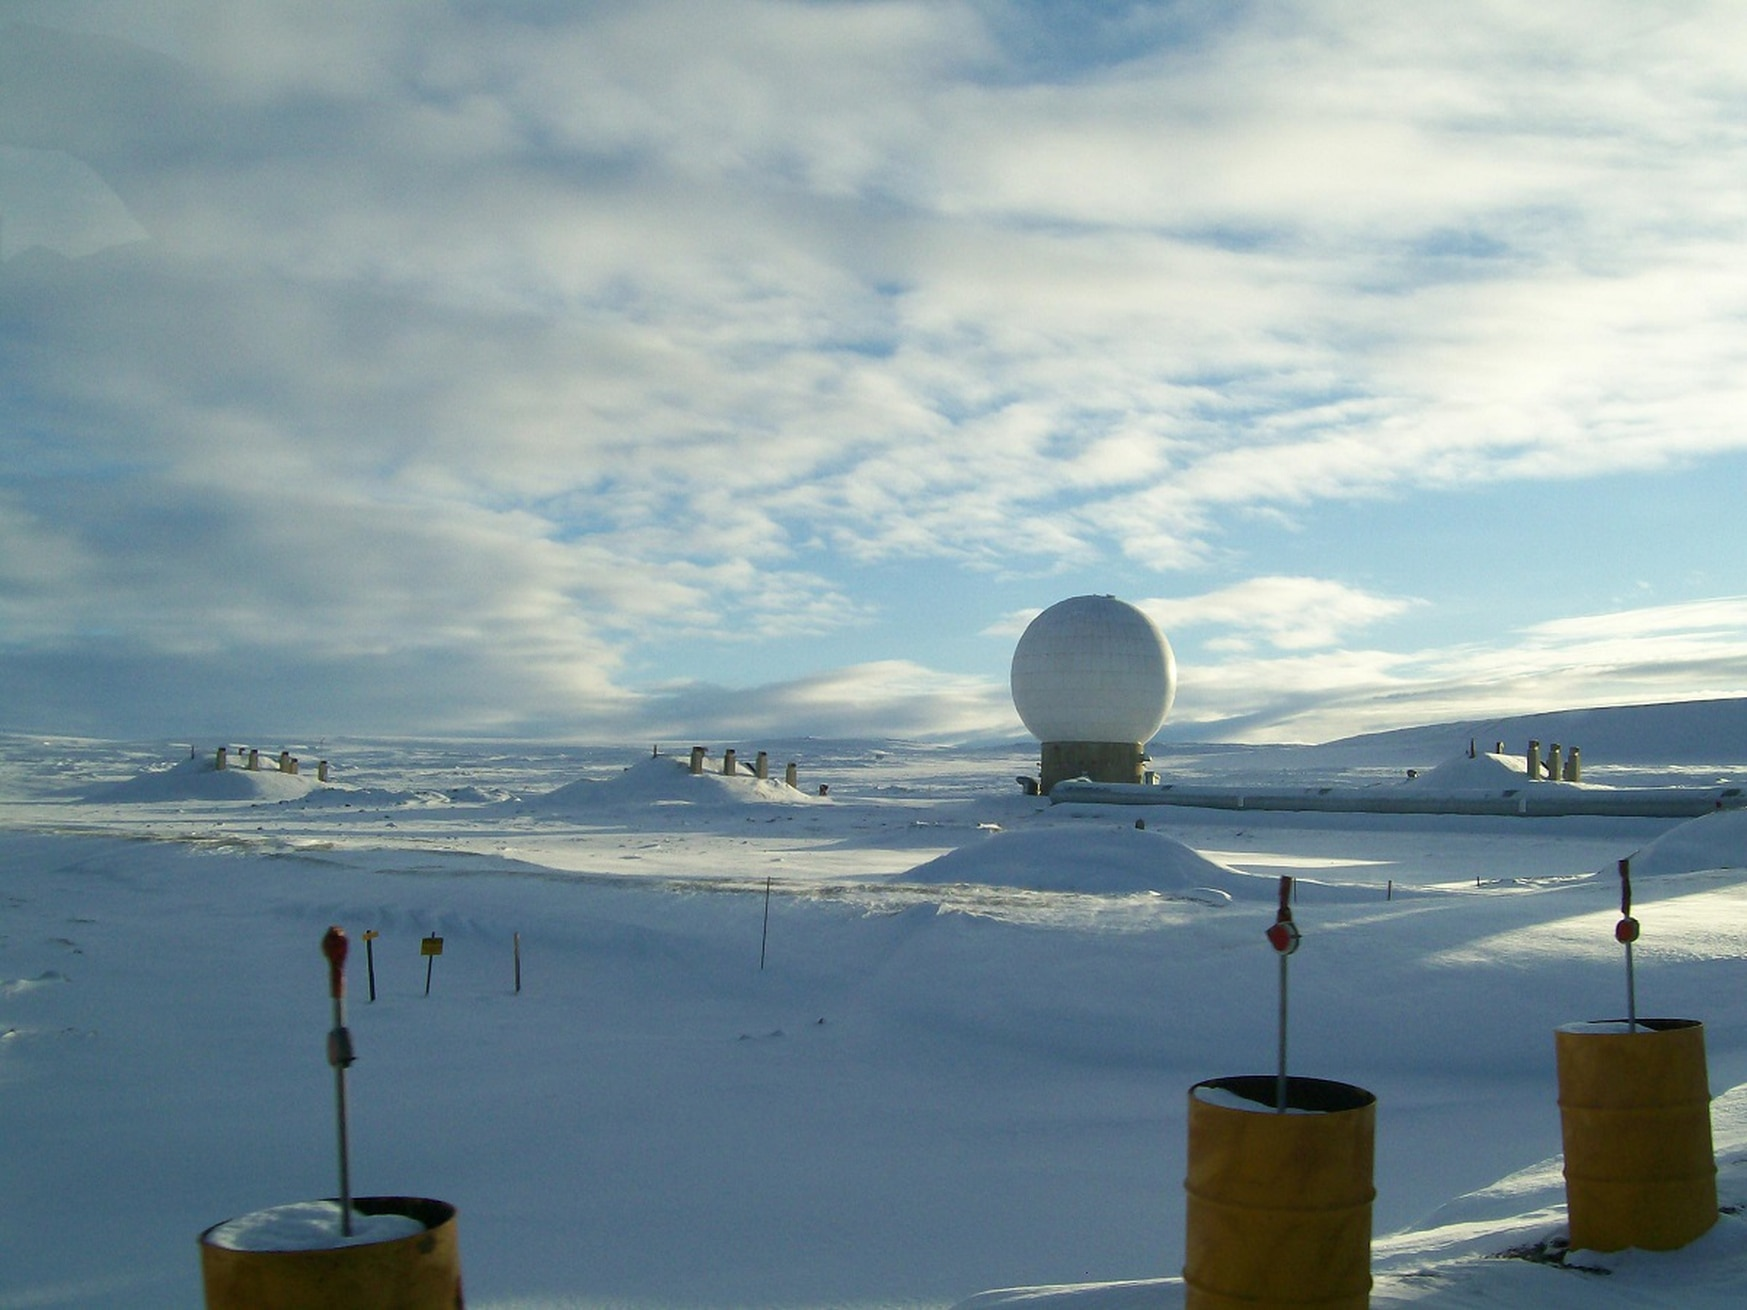 This white golf ball-like structure houses one of several radars that scan the skies for foreign military rockets and missiles at Thule Air Base, Greenland. (JoAnne Castagna/U.S. Army)